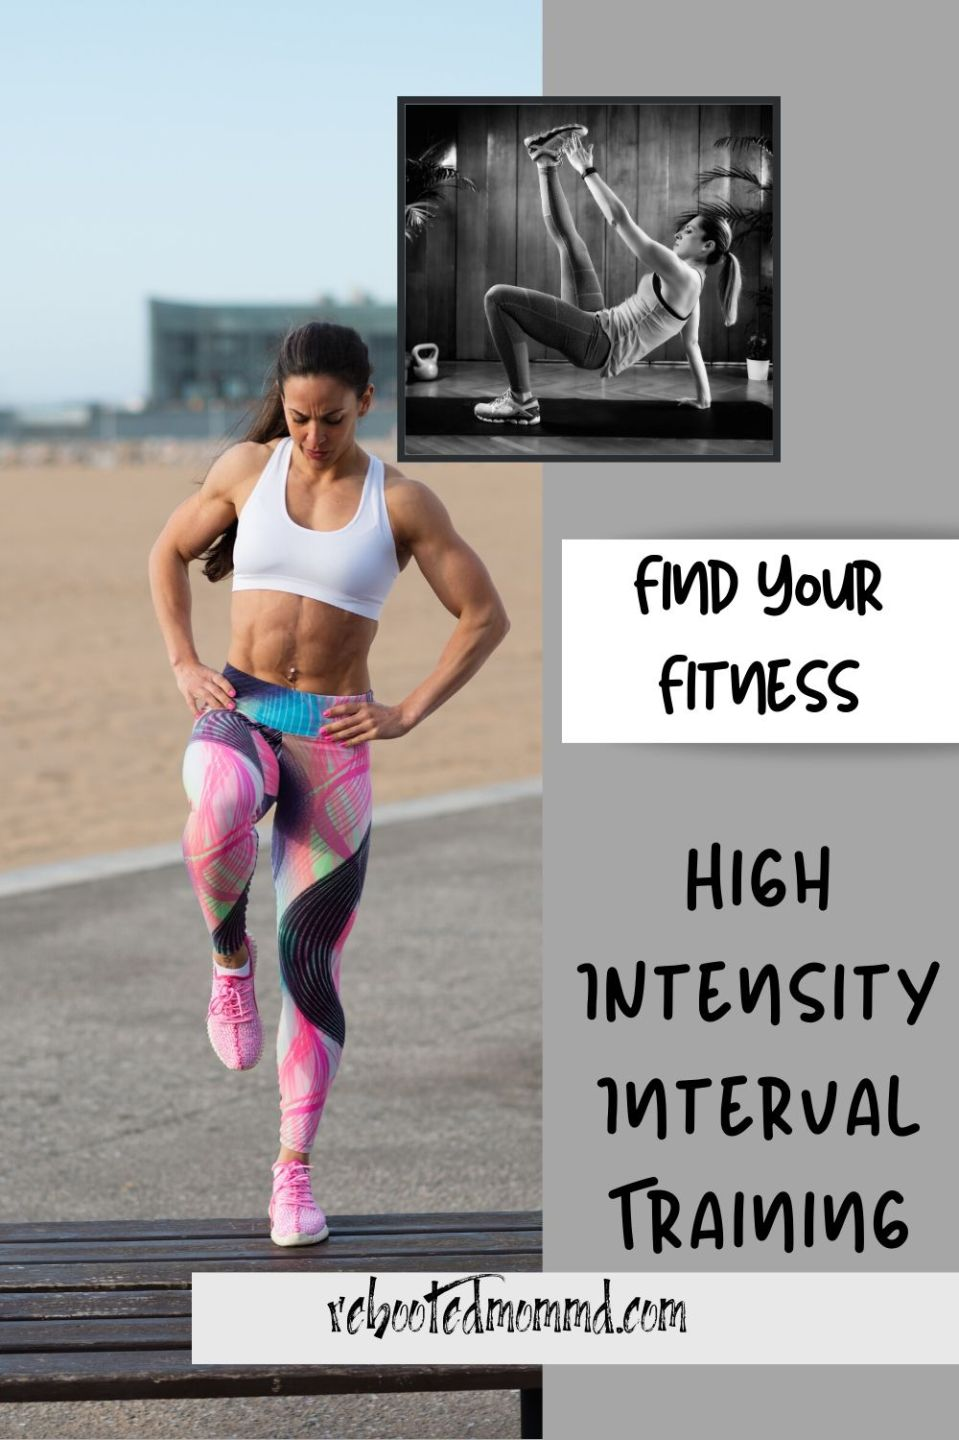 Find Your Fitness: HIIT